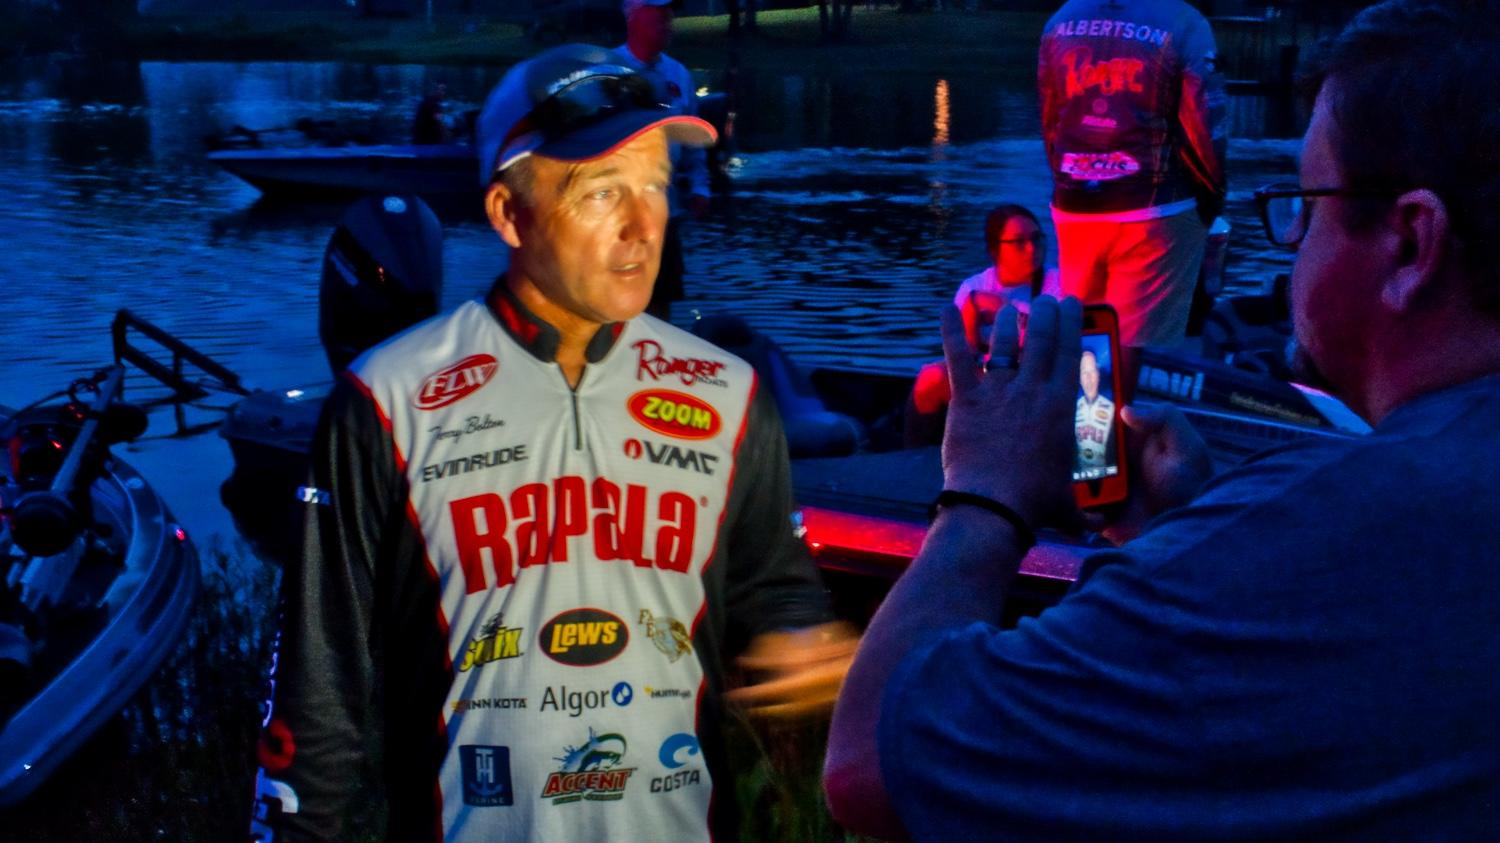 flw-cup-day2-3.jpg